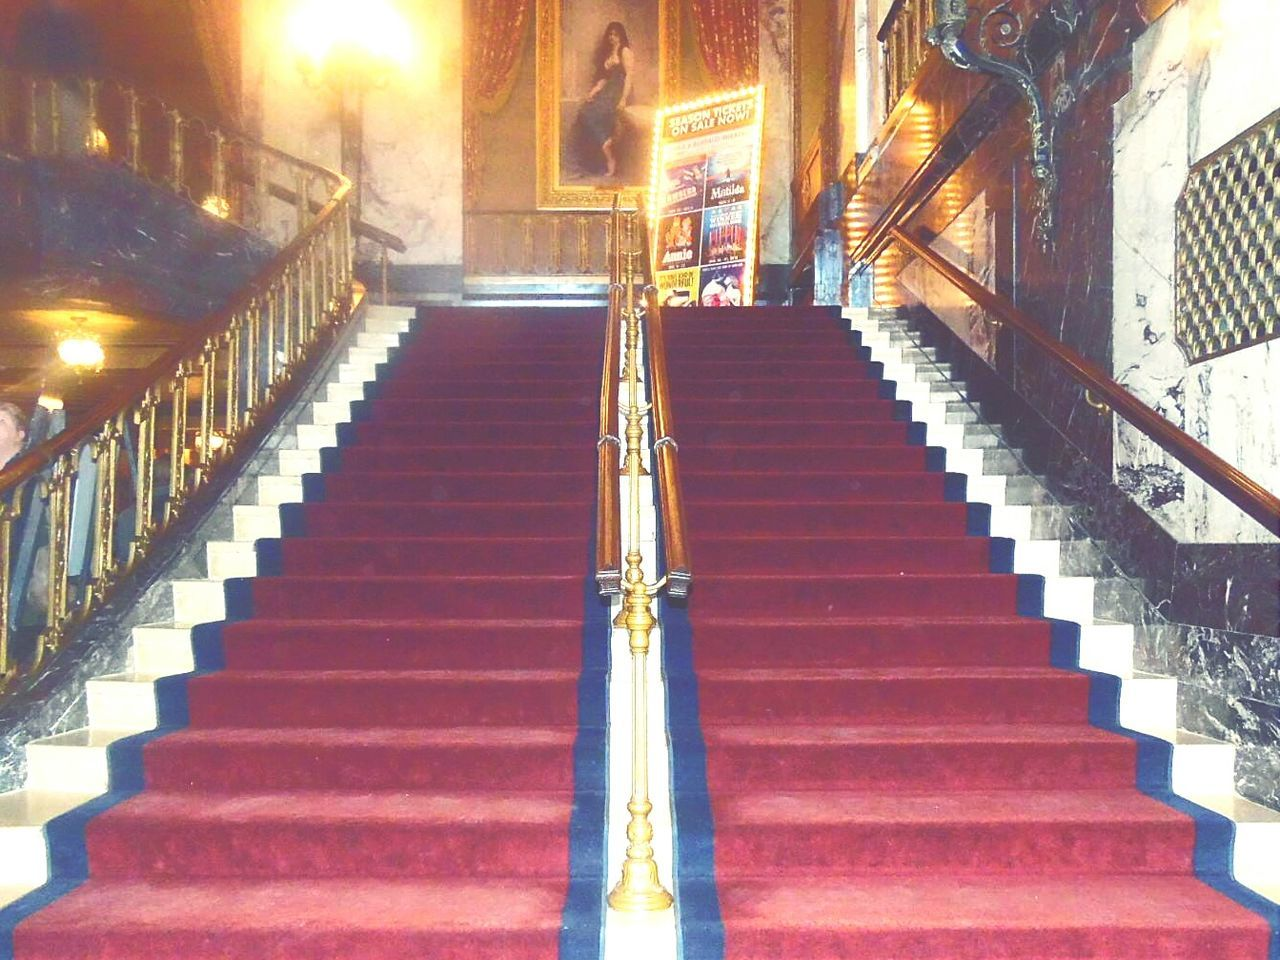 Stairways Red, Velvet, Theater, Stairs Sheas Theater Operahouse Opera House Theater Theater Life Theaters